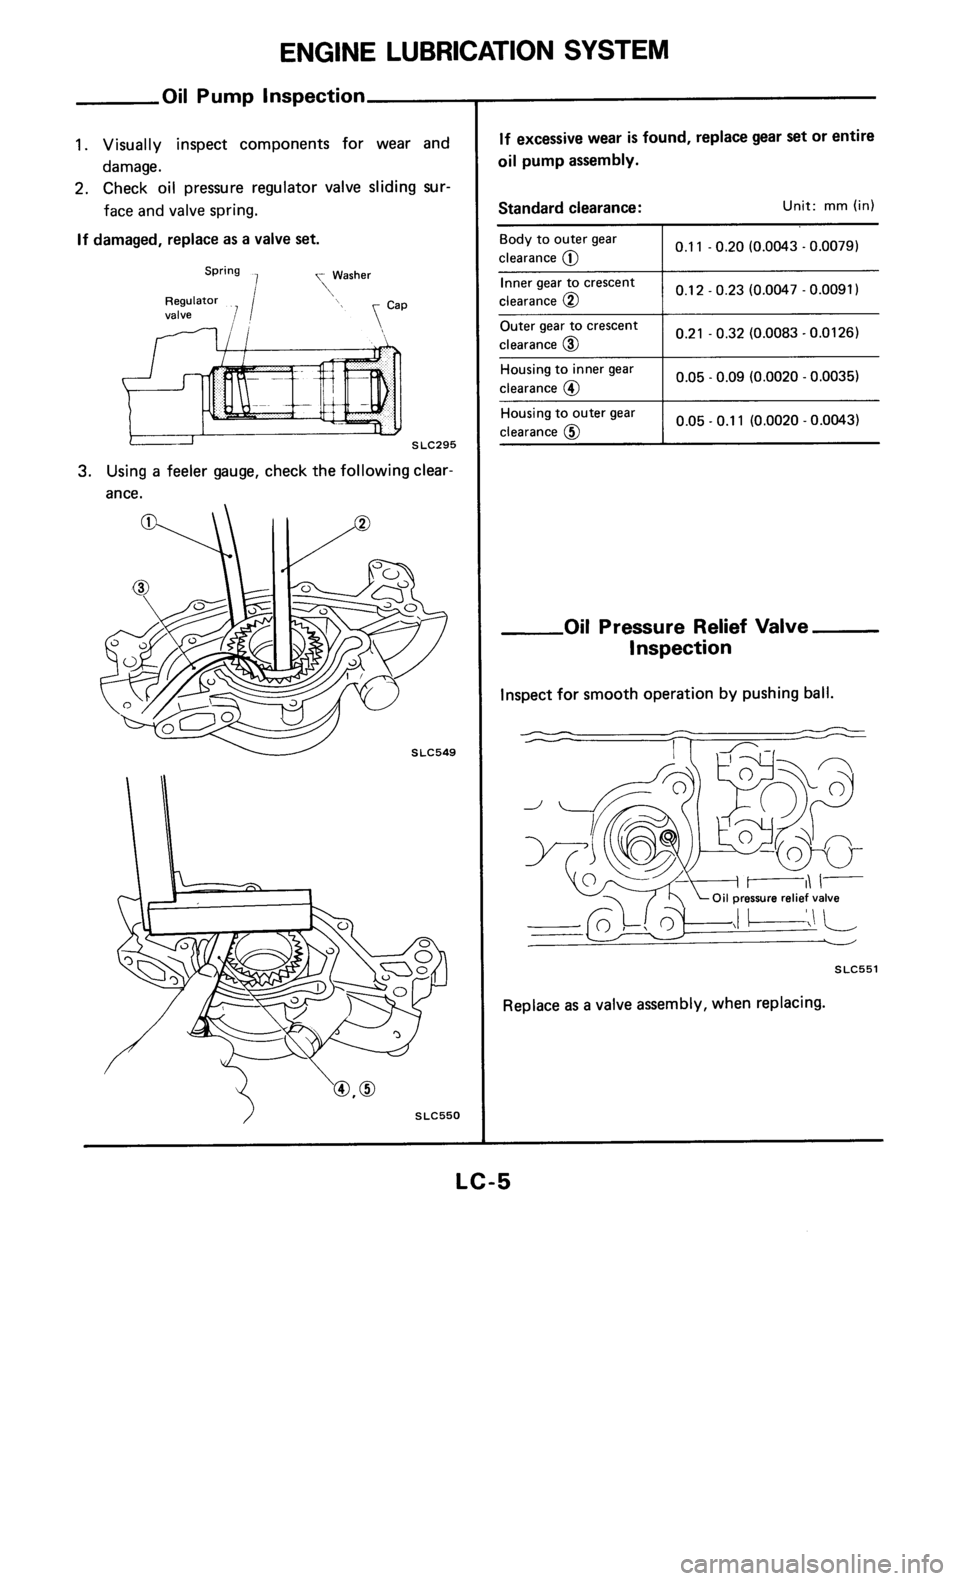 NISSAN 300ZX 1985 Z31 Engine Lubrication And Cooling System Workshop Manual, Page 5